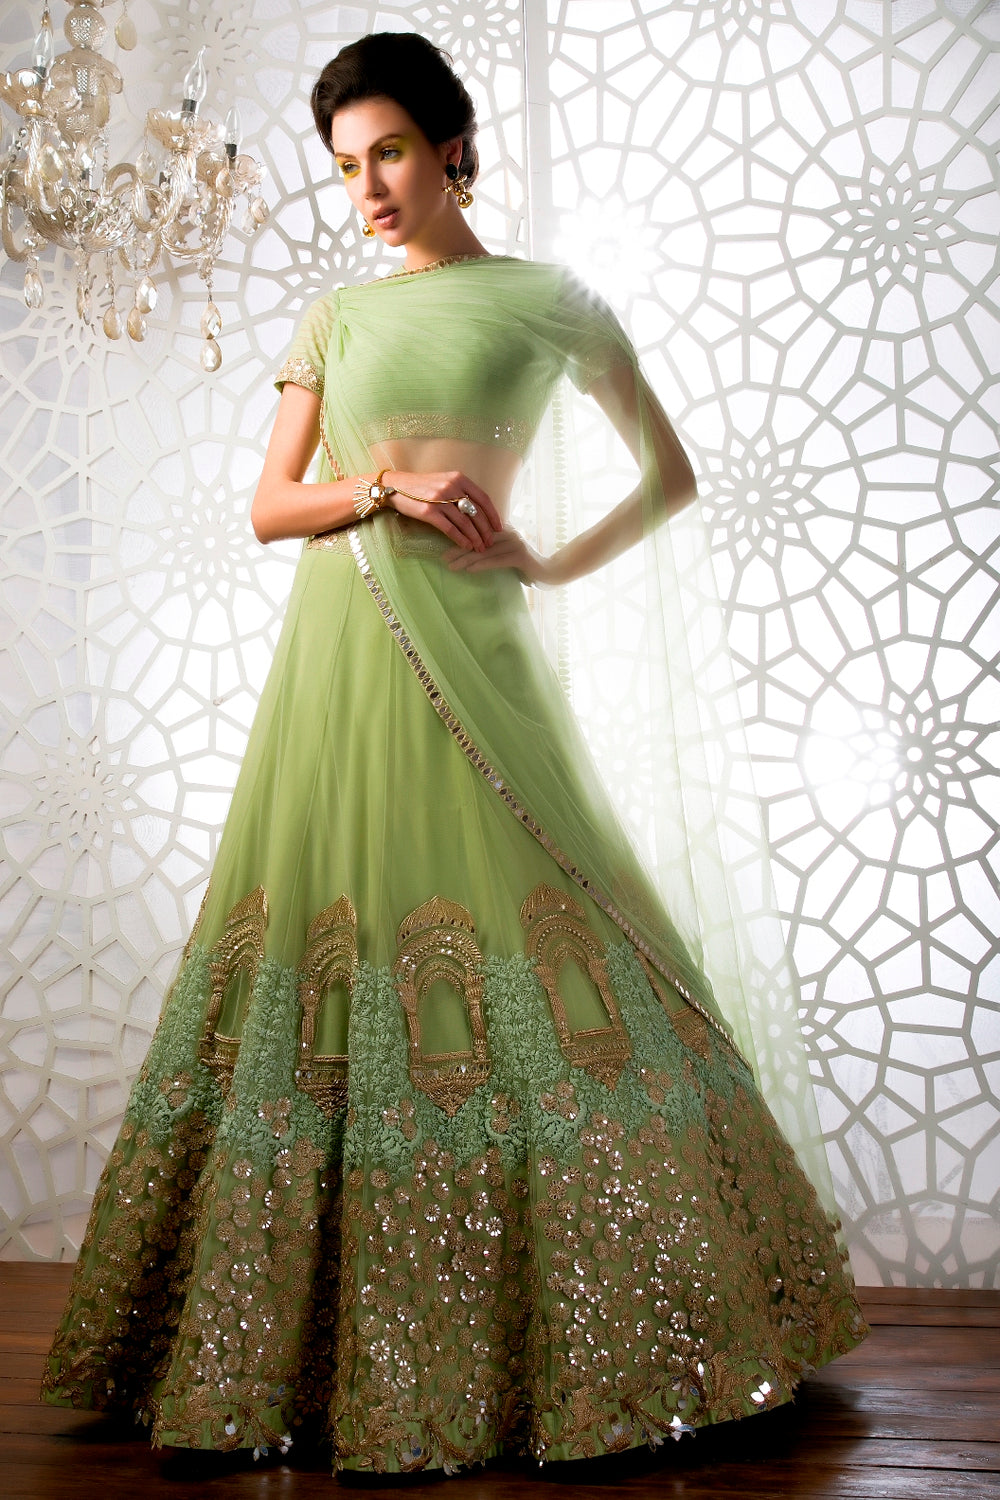 This Olive Green Lehenga Choli is featured in net fabric.